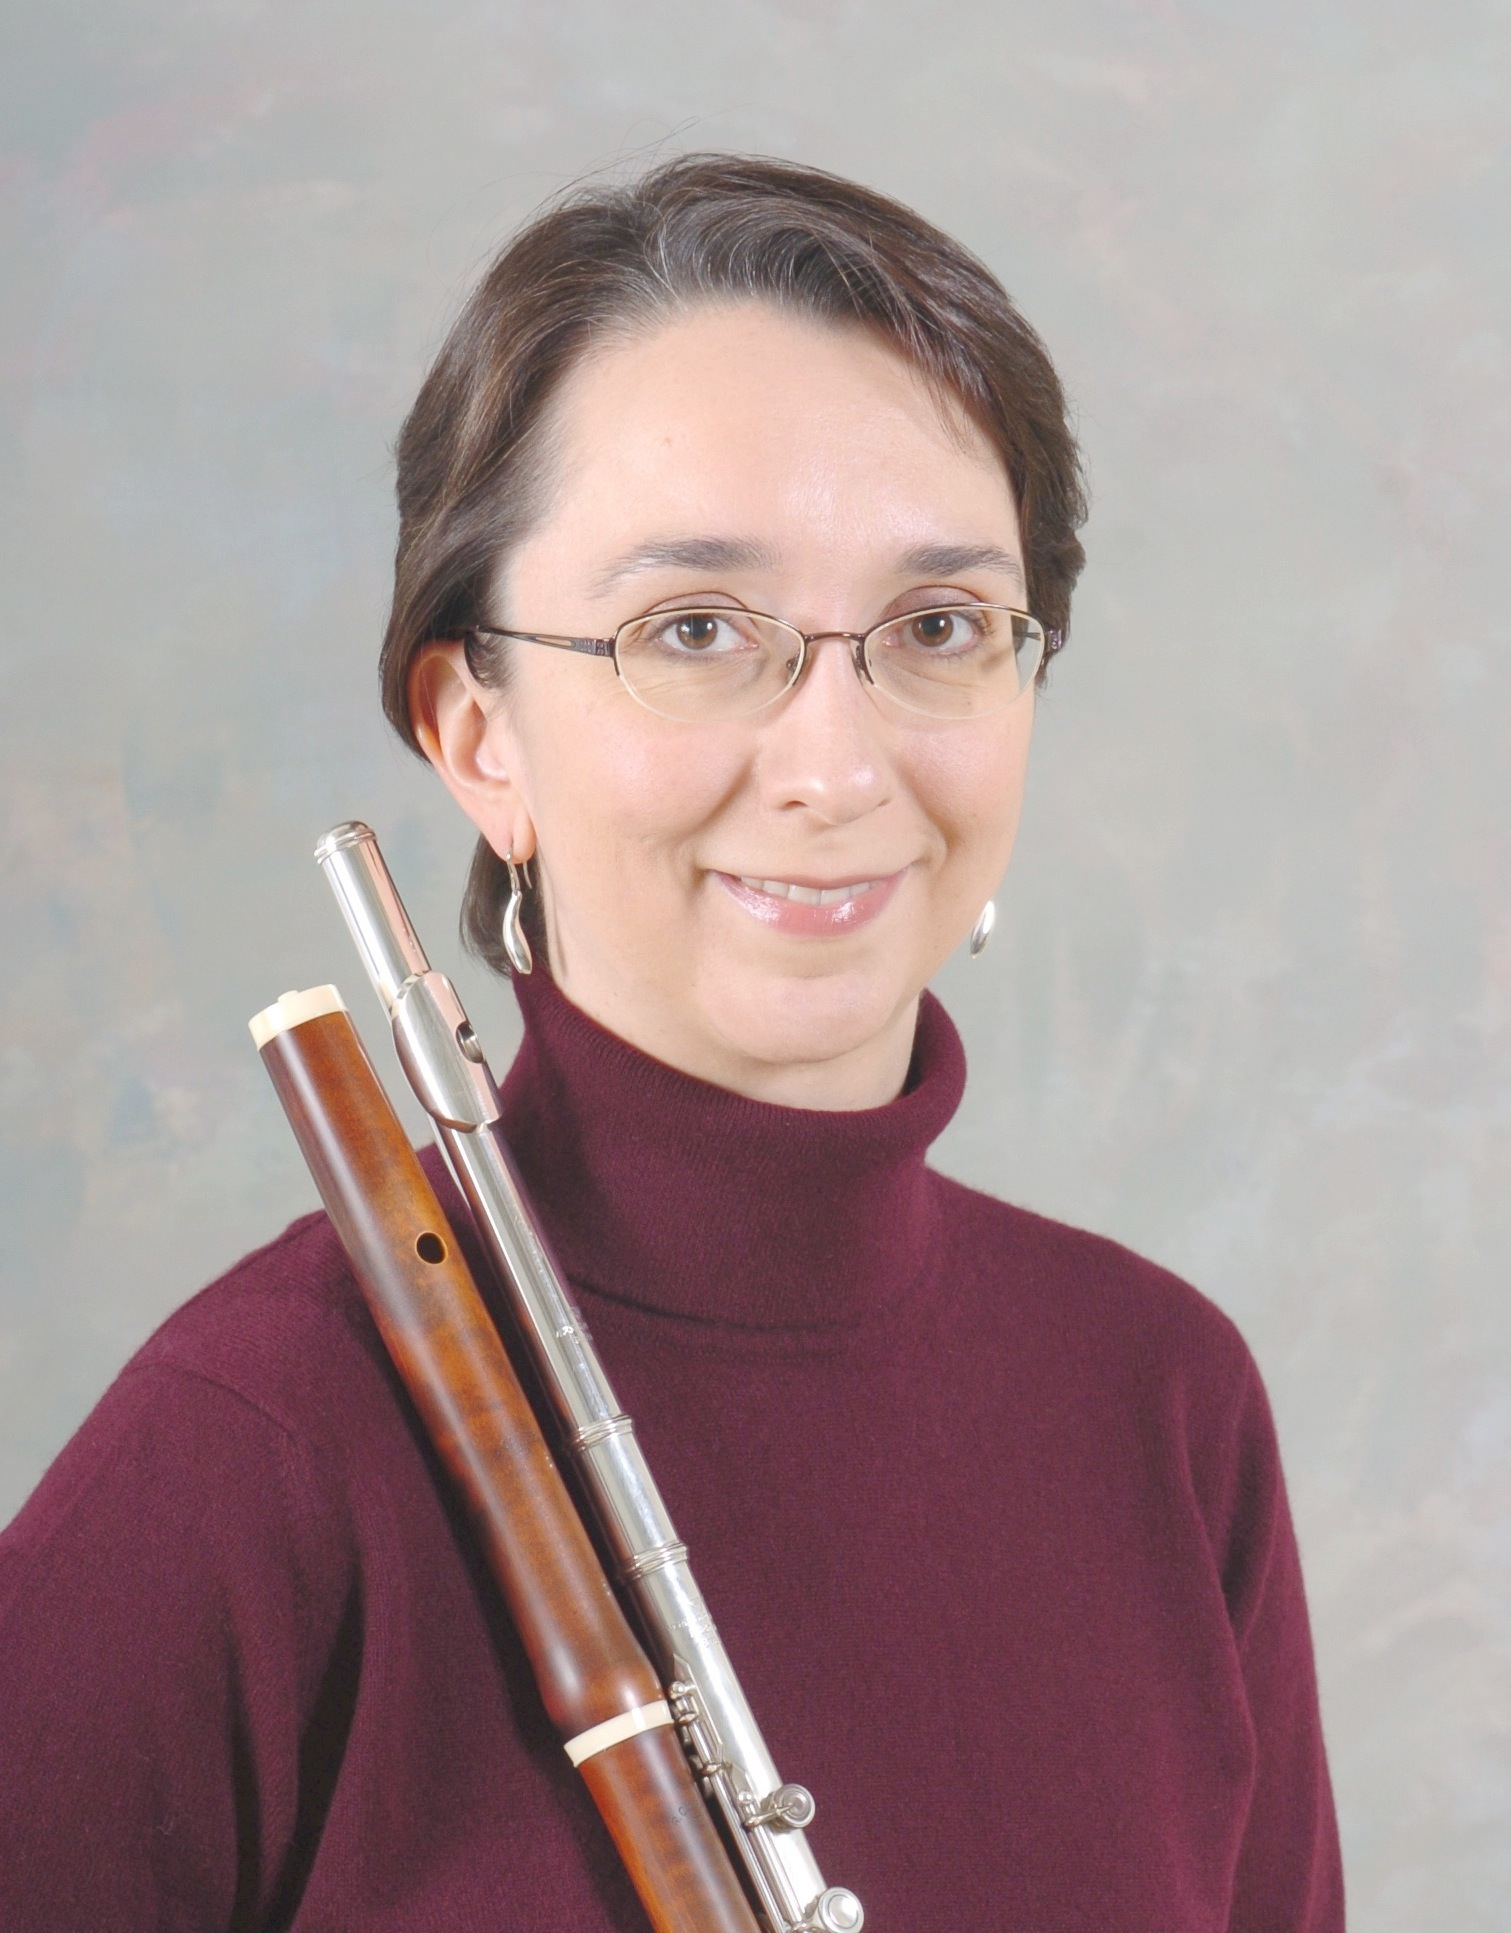 Linda Pereksta, current UW Oshkosh Music Department Faculty